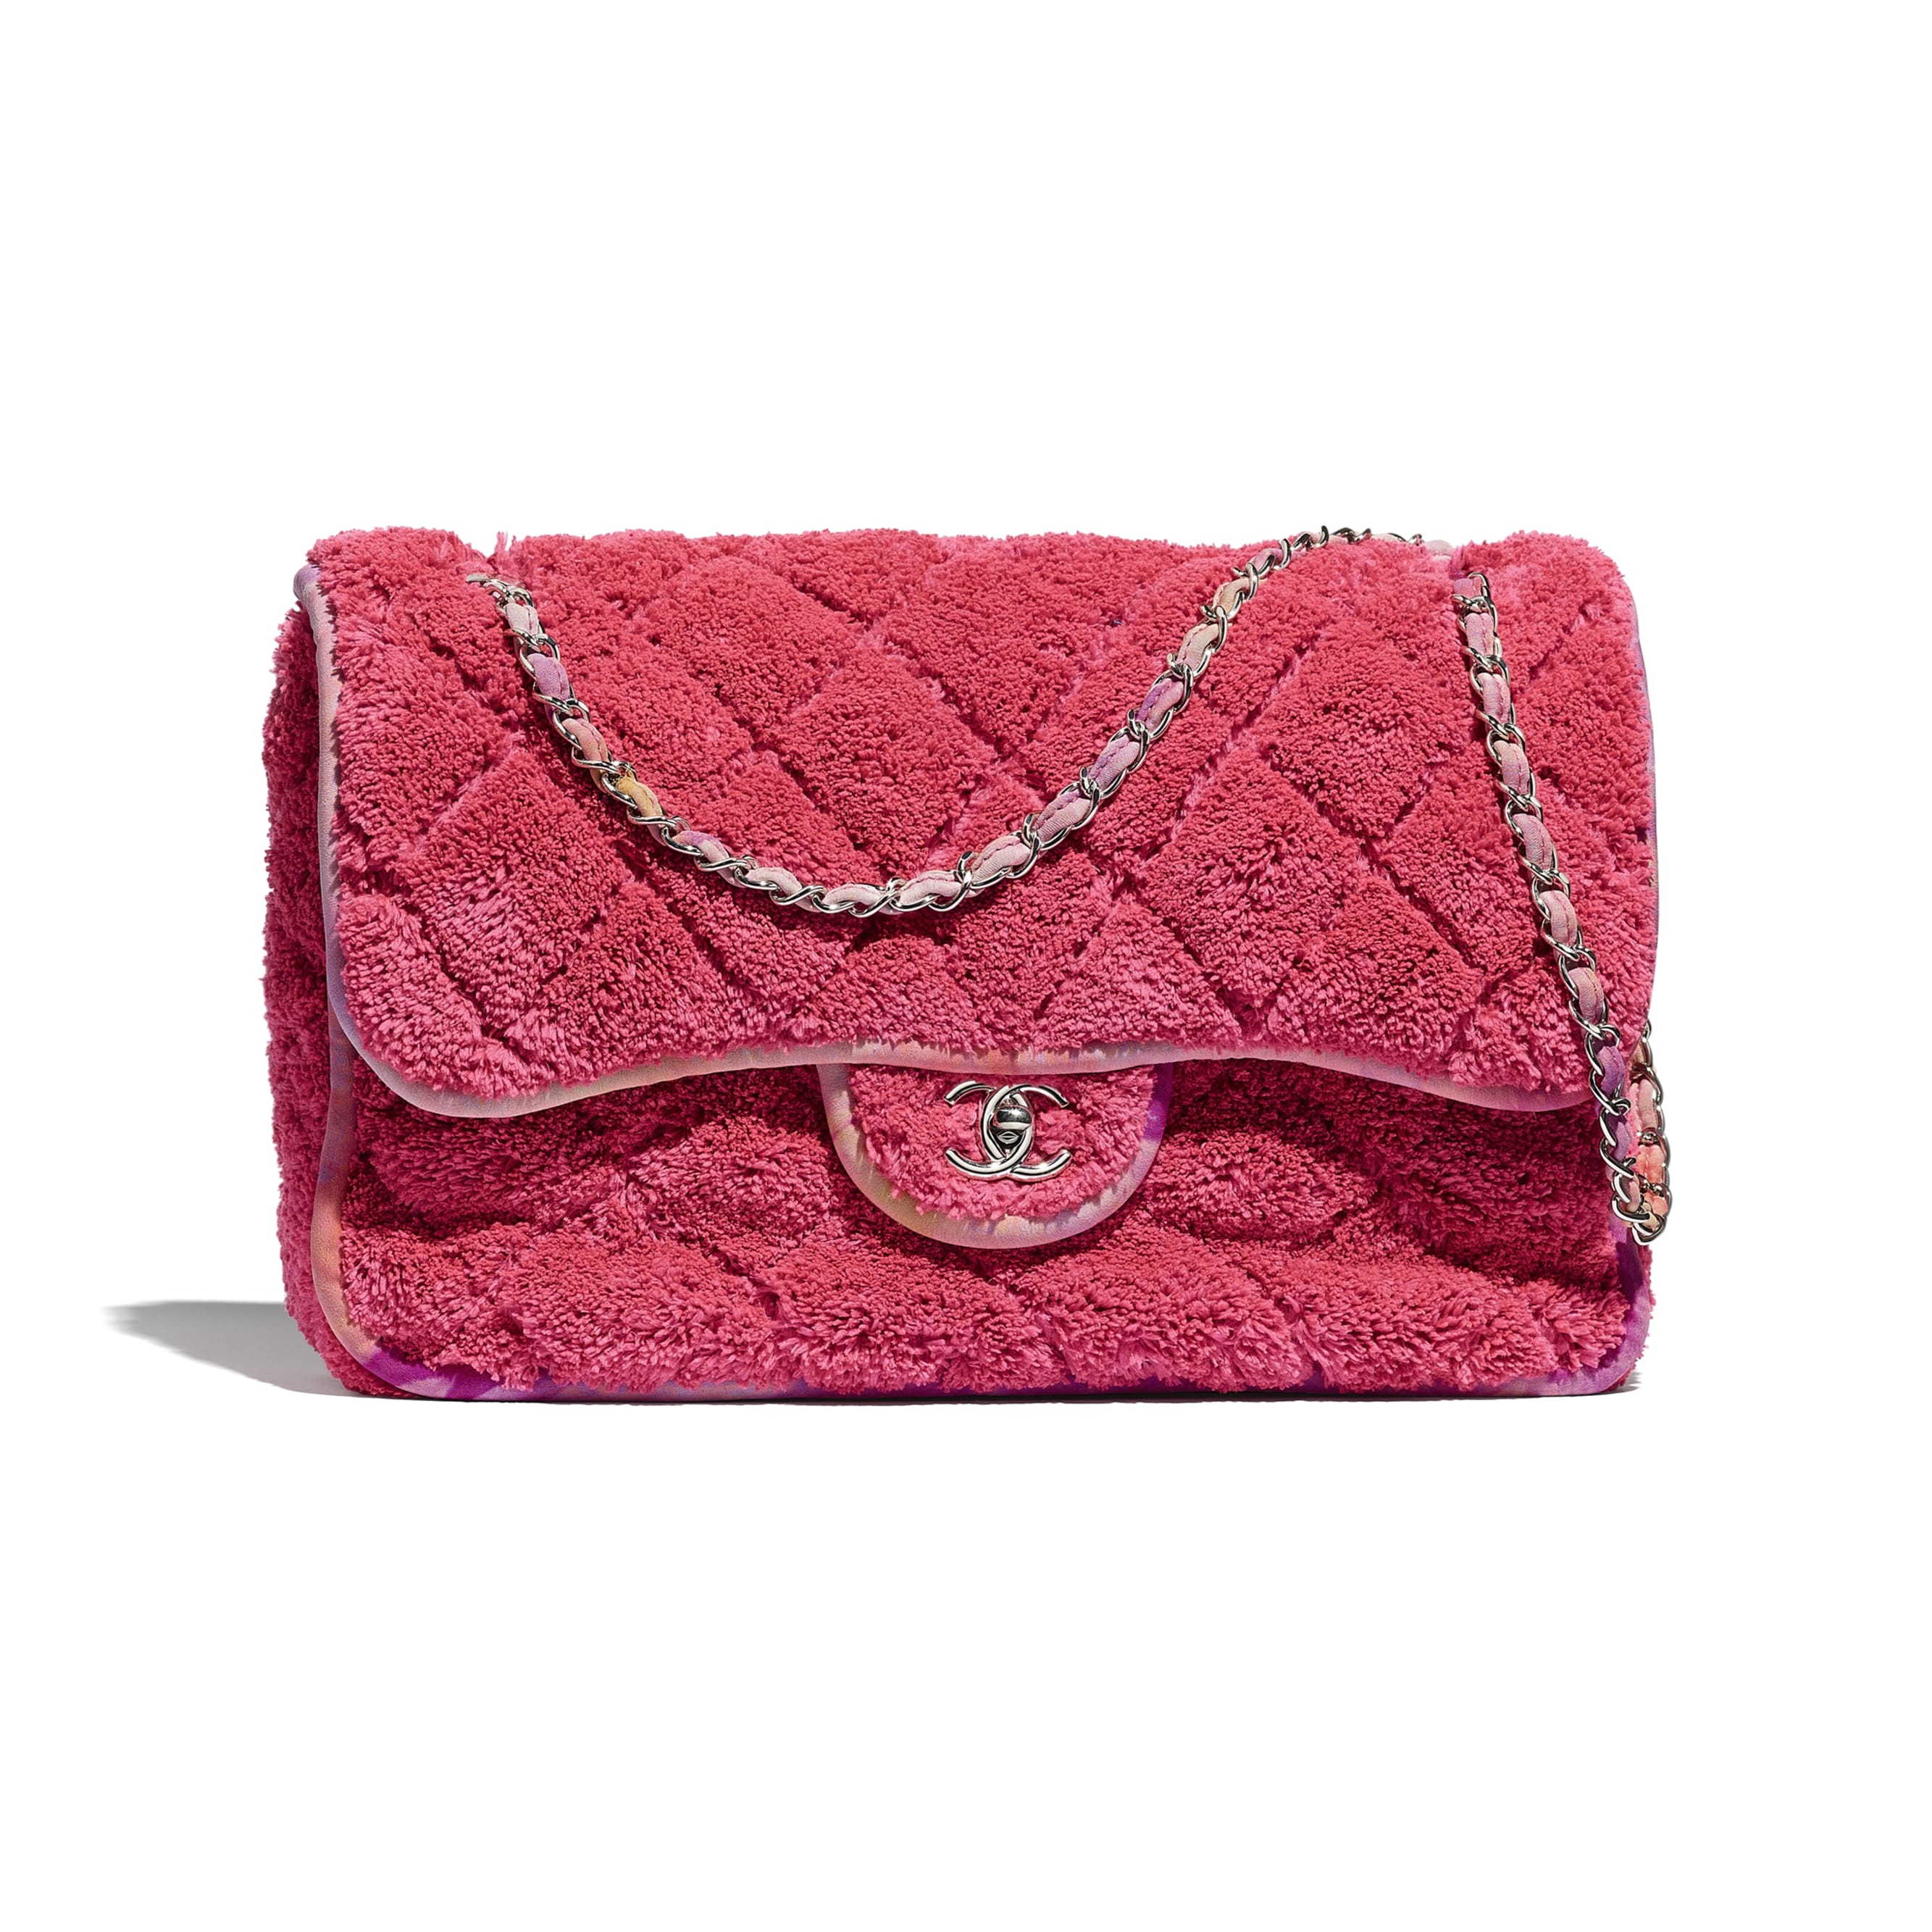 Large Flap Bag - Coral - Mixed Fibers & Silver-Tone Metal - CHANEL - Default view - see standard sized version